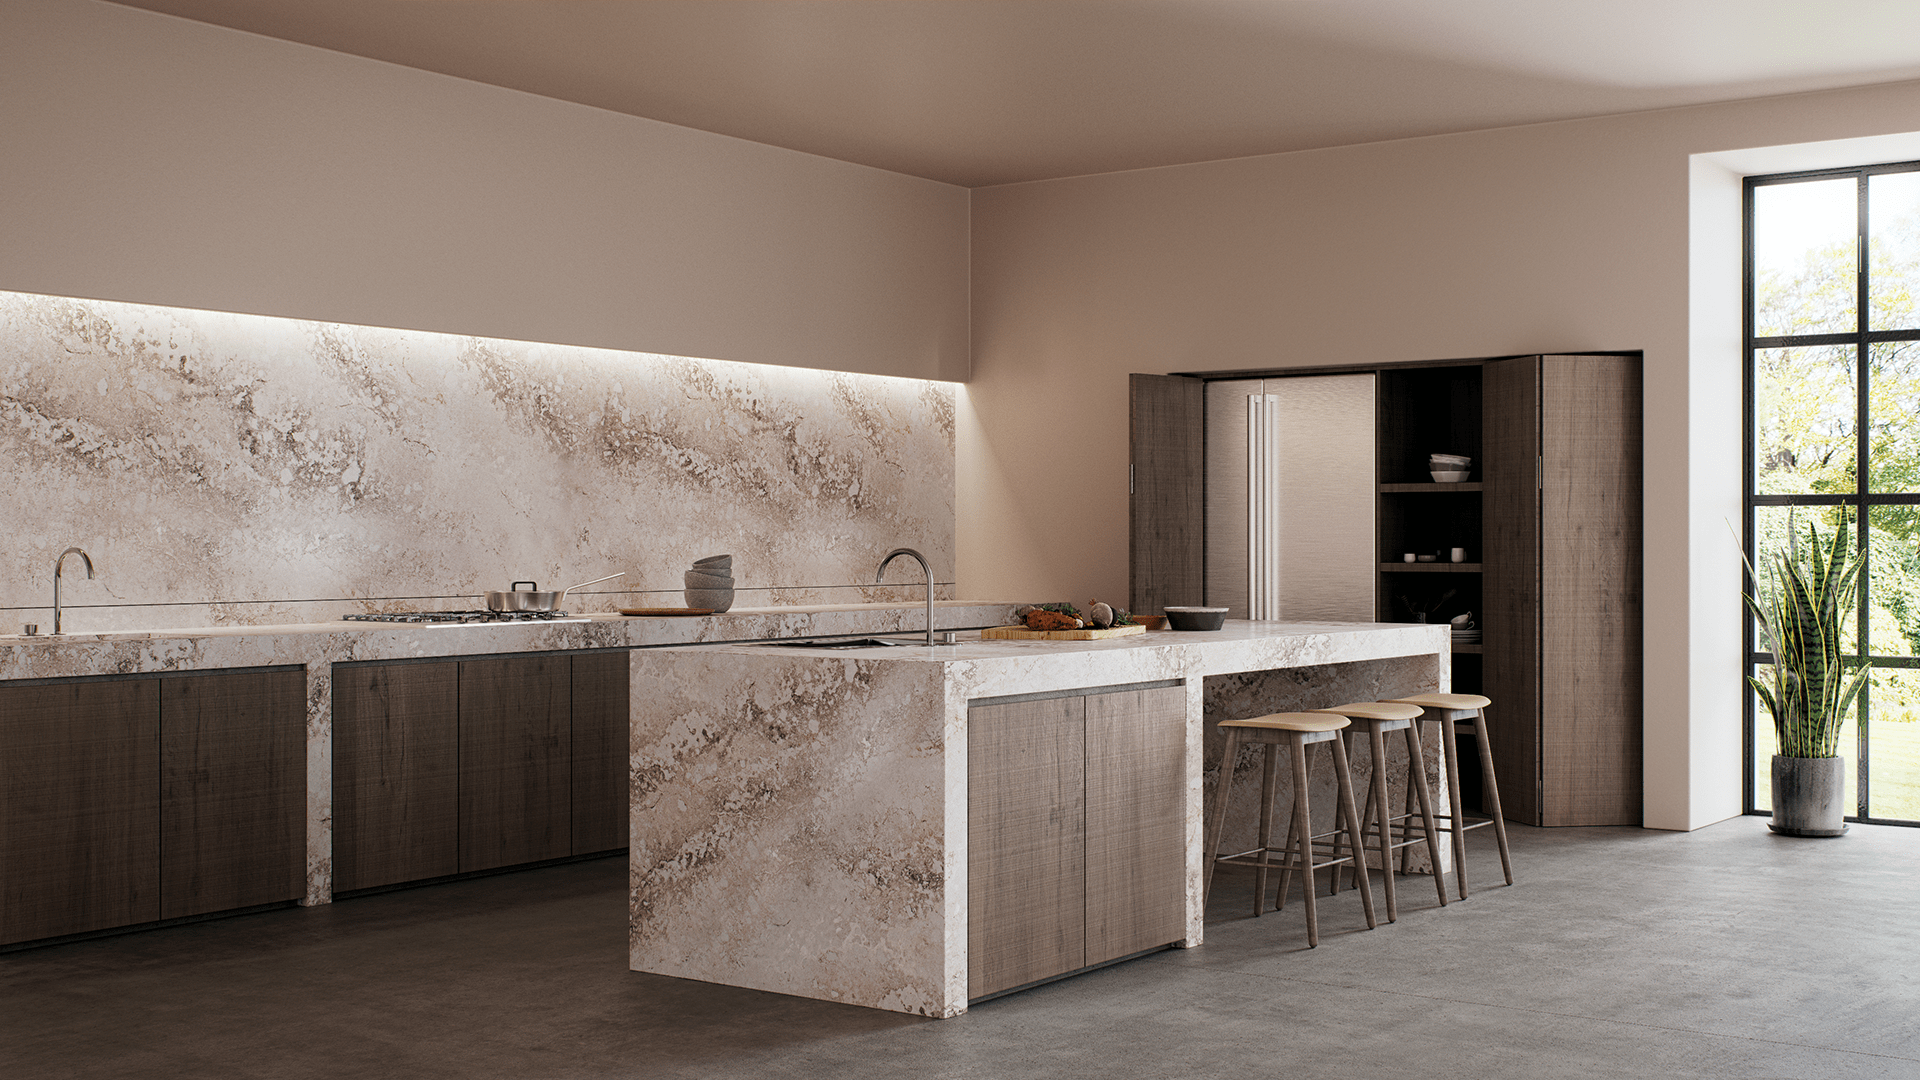 Kitchen Cupboard Colours 2018 Caesarstone New Colours 2018 Texture And Patina Rule The